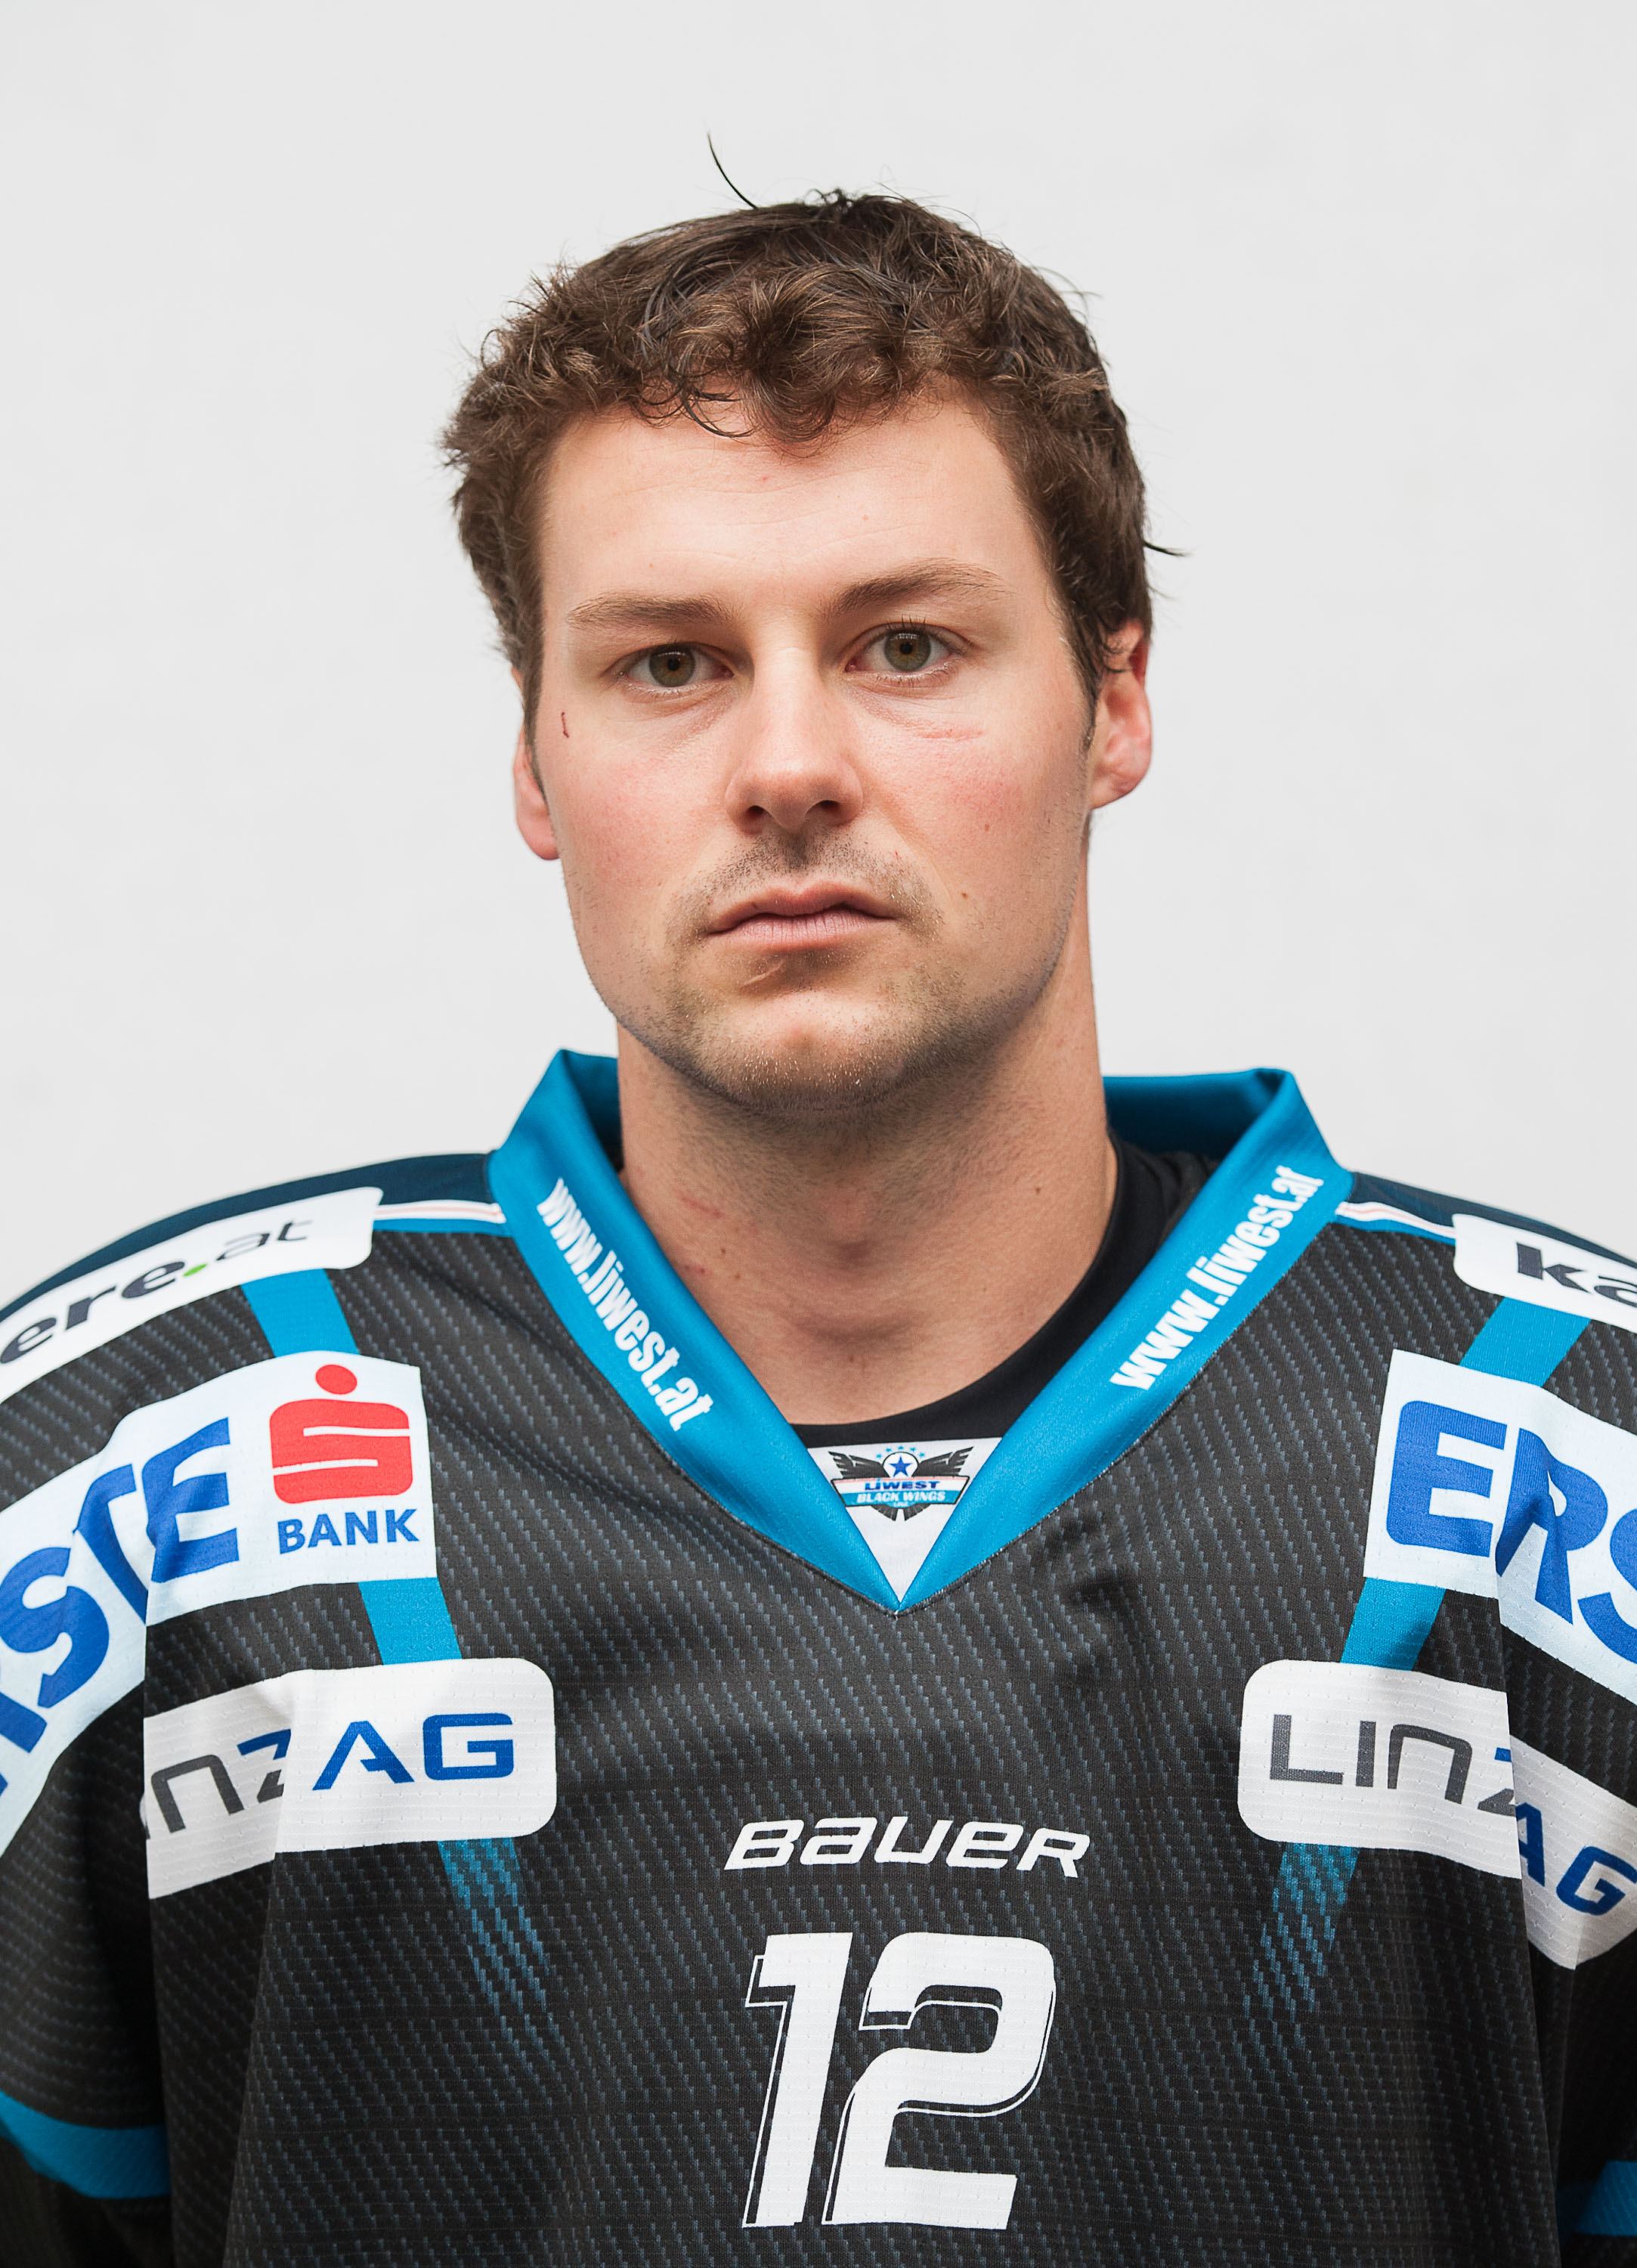 AUT, Liwest Black Wings Linz – Portraitfoto Team 2014/15